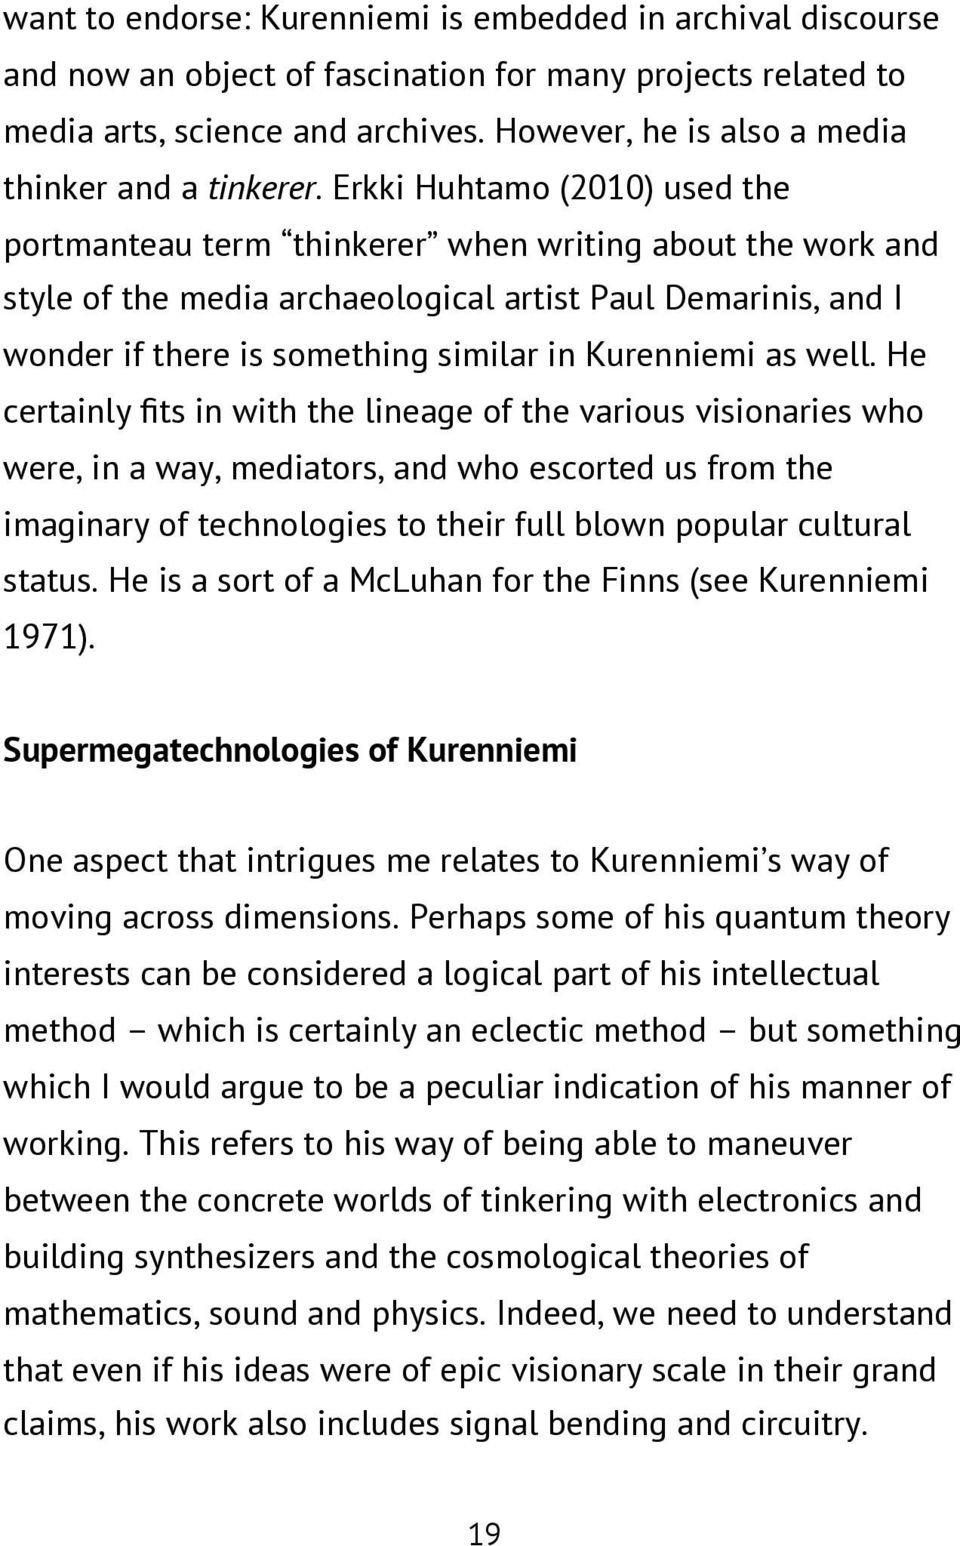 Erkki Huhtamo (2010) used the portmanteau term thinkerer when writing about the work and style of the media archaeological artist Paul Demarinis, and I wonder if there is something similar in